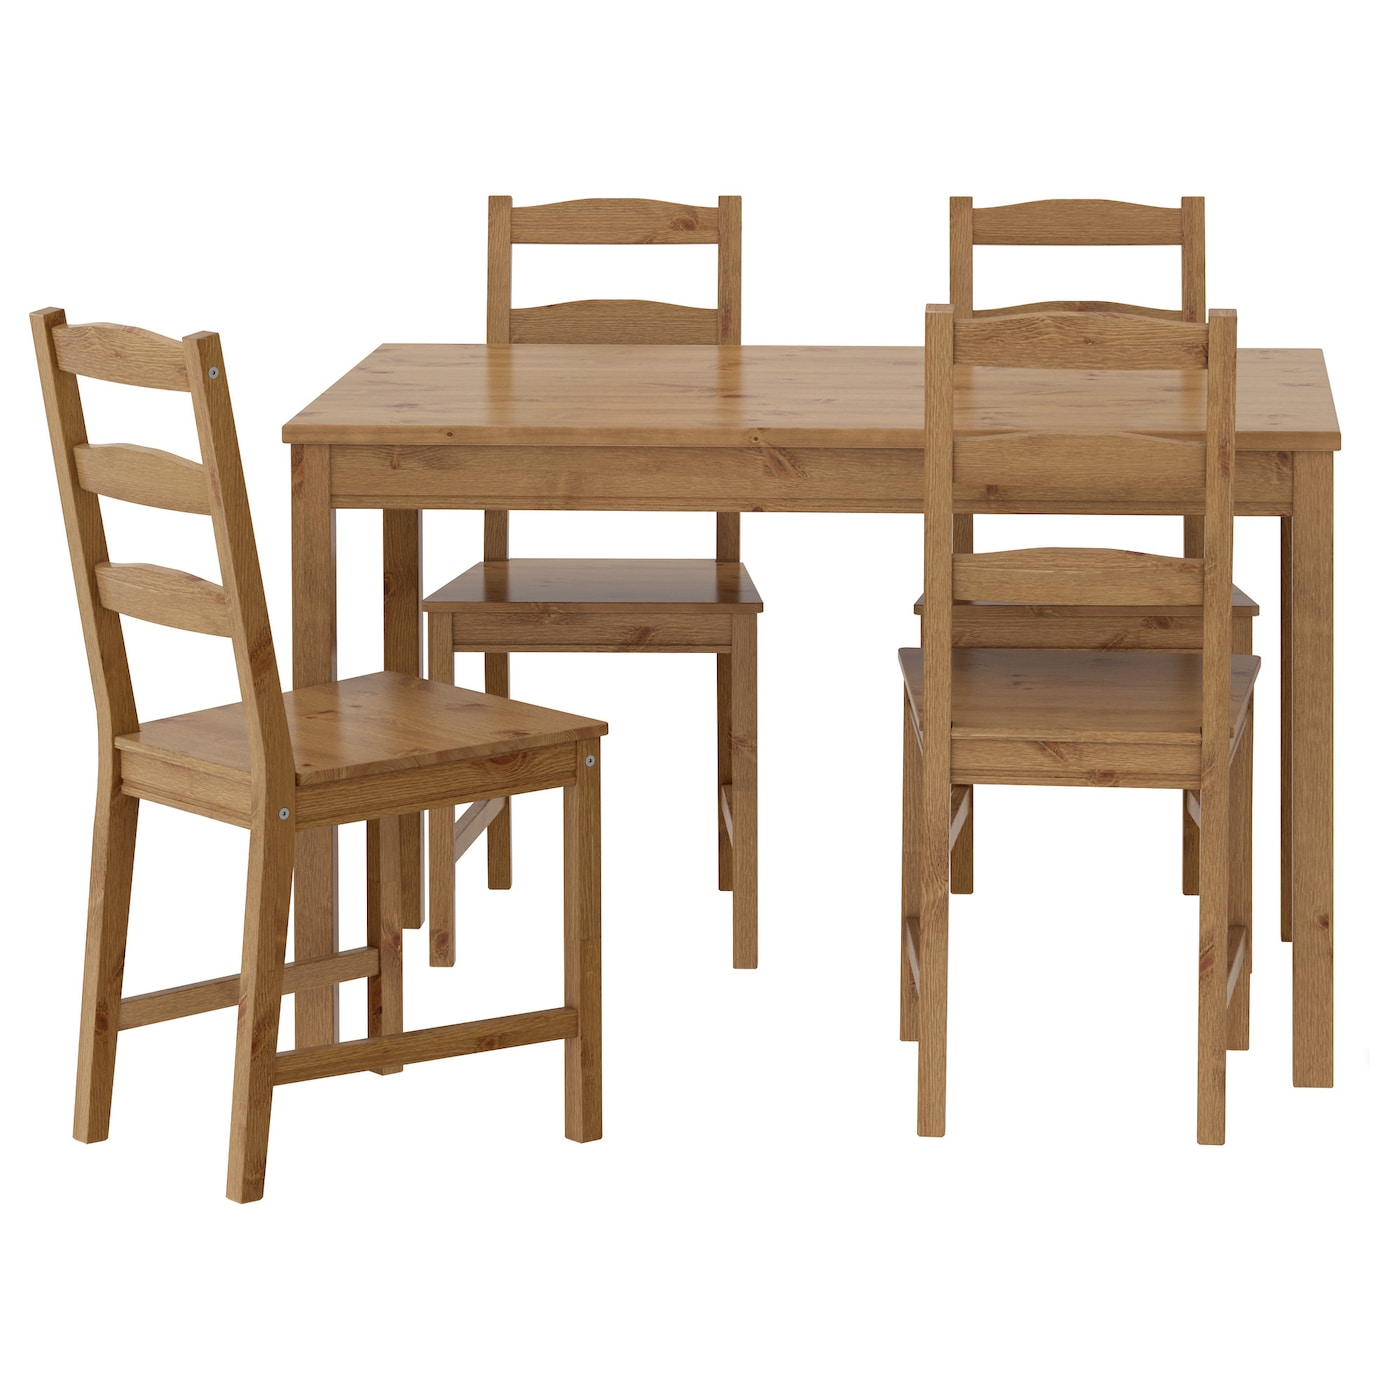 Small kitchen table set - Ikea Jokkmokk Table And 4 Chairs Solid Pine A Natural Material That Ages Beautifully